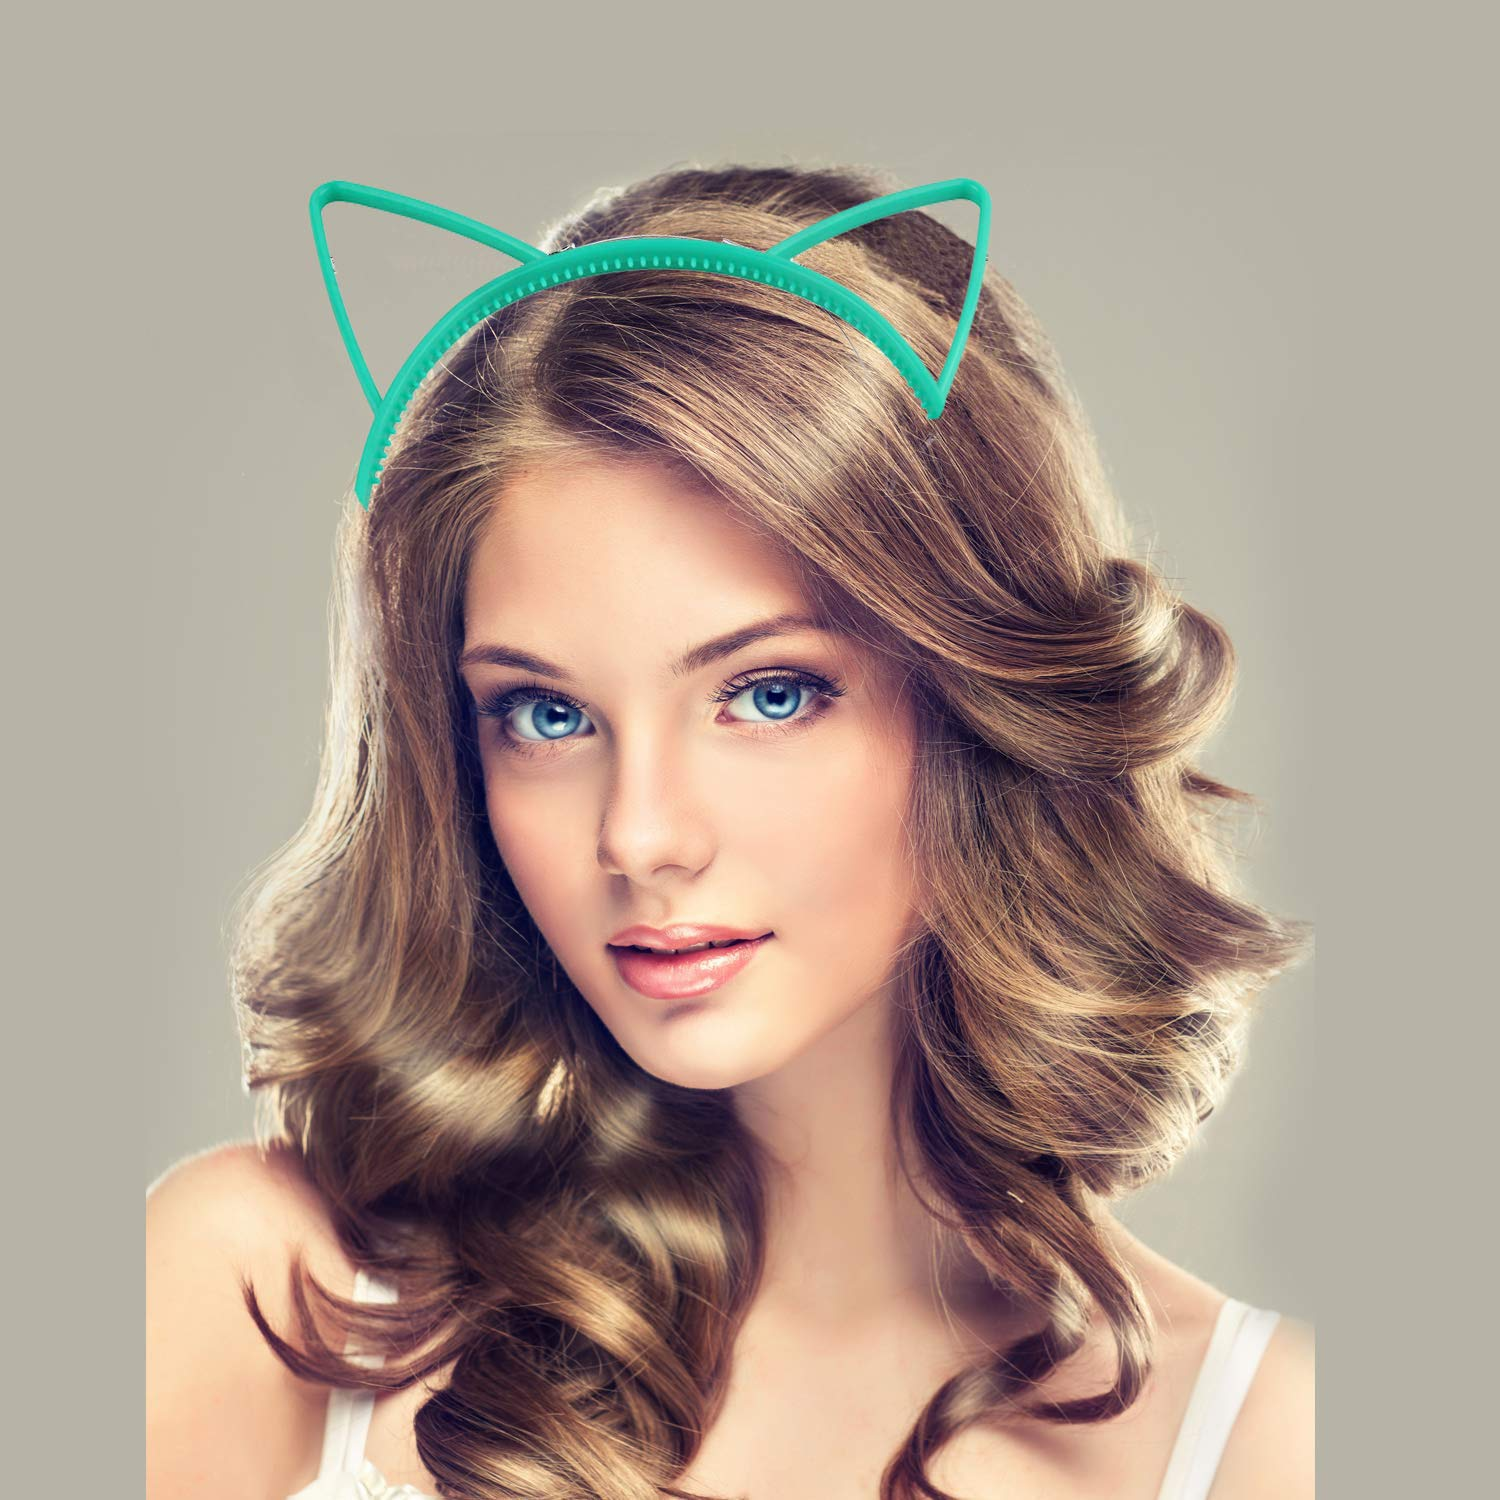 WENTS Cat Ear Headband Hair Hoop Hairband Adult Kids for Party Bag Fillers Daily Wearing 24 PCS